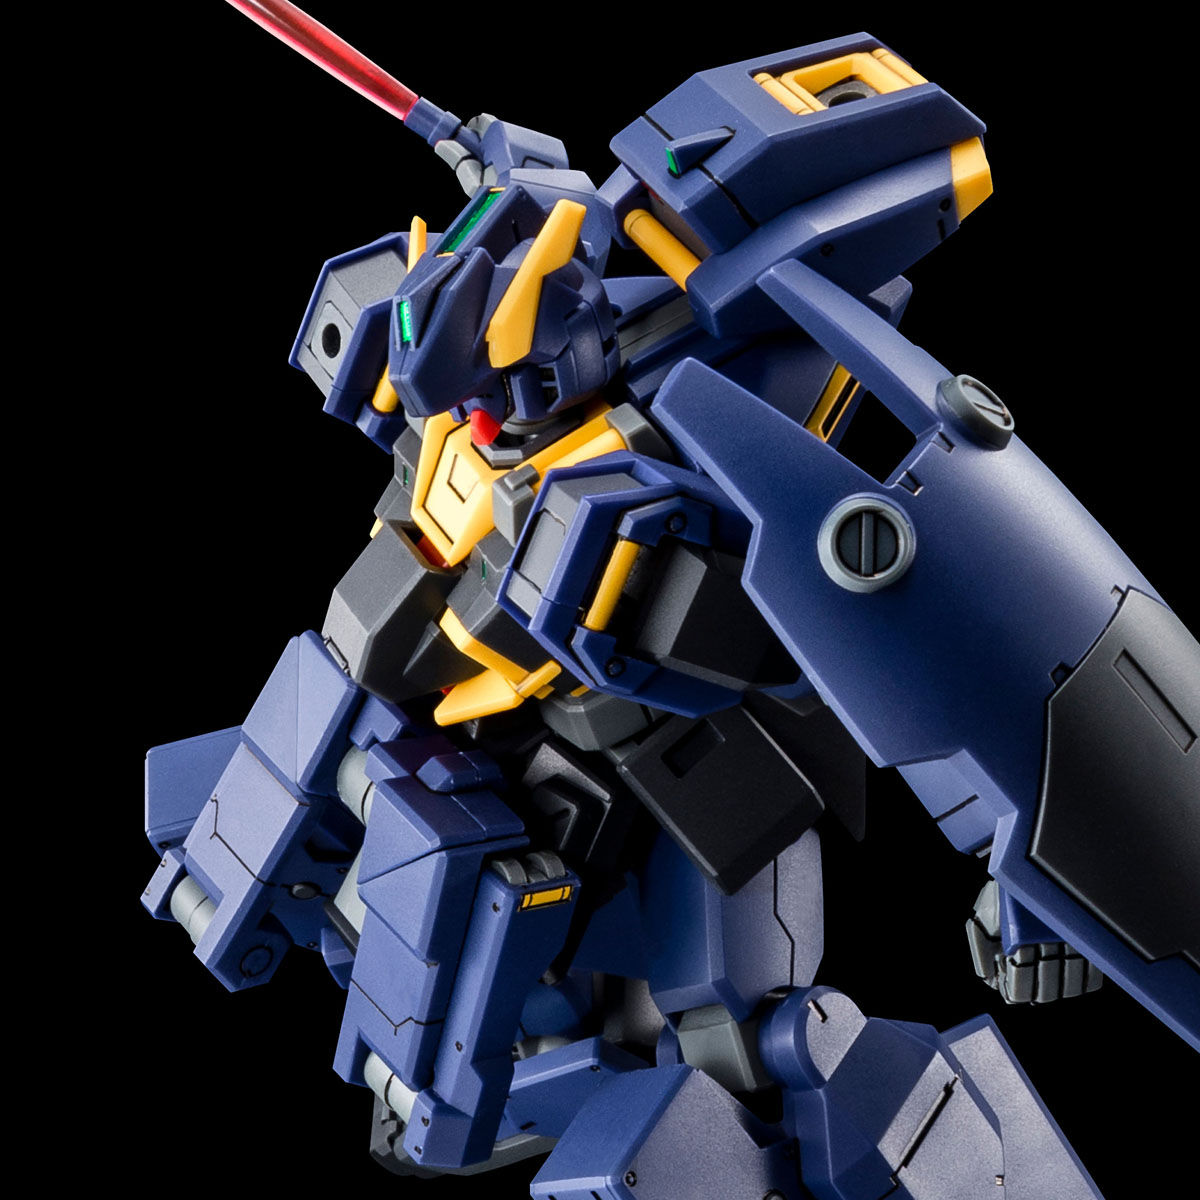 HG 1/144 GUNDAM TR-1 [HAZEL OWSLA] NEXT-GENERATION MASS PRODUCTION TYPE/(COMBAT DEPLOYMENT COLORS)(ADVANCE OF Z THE FLAG OF TITANS) [Mar 2021 Delivery]